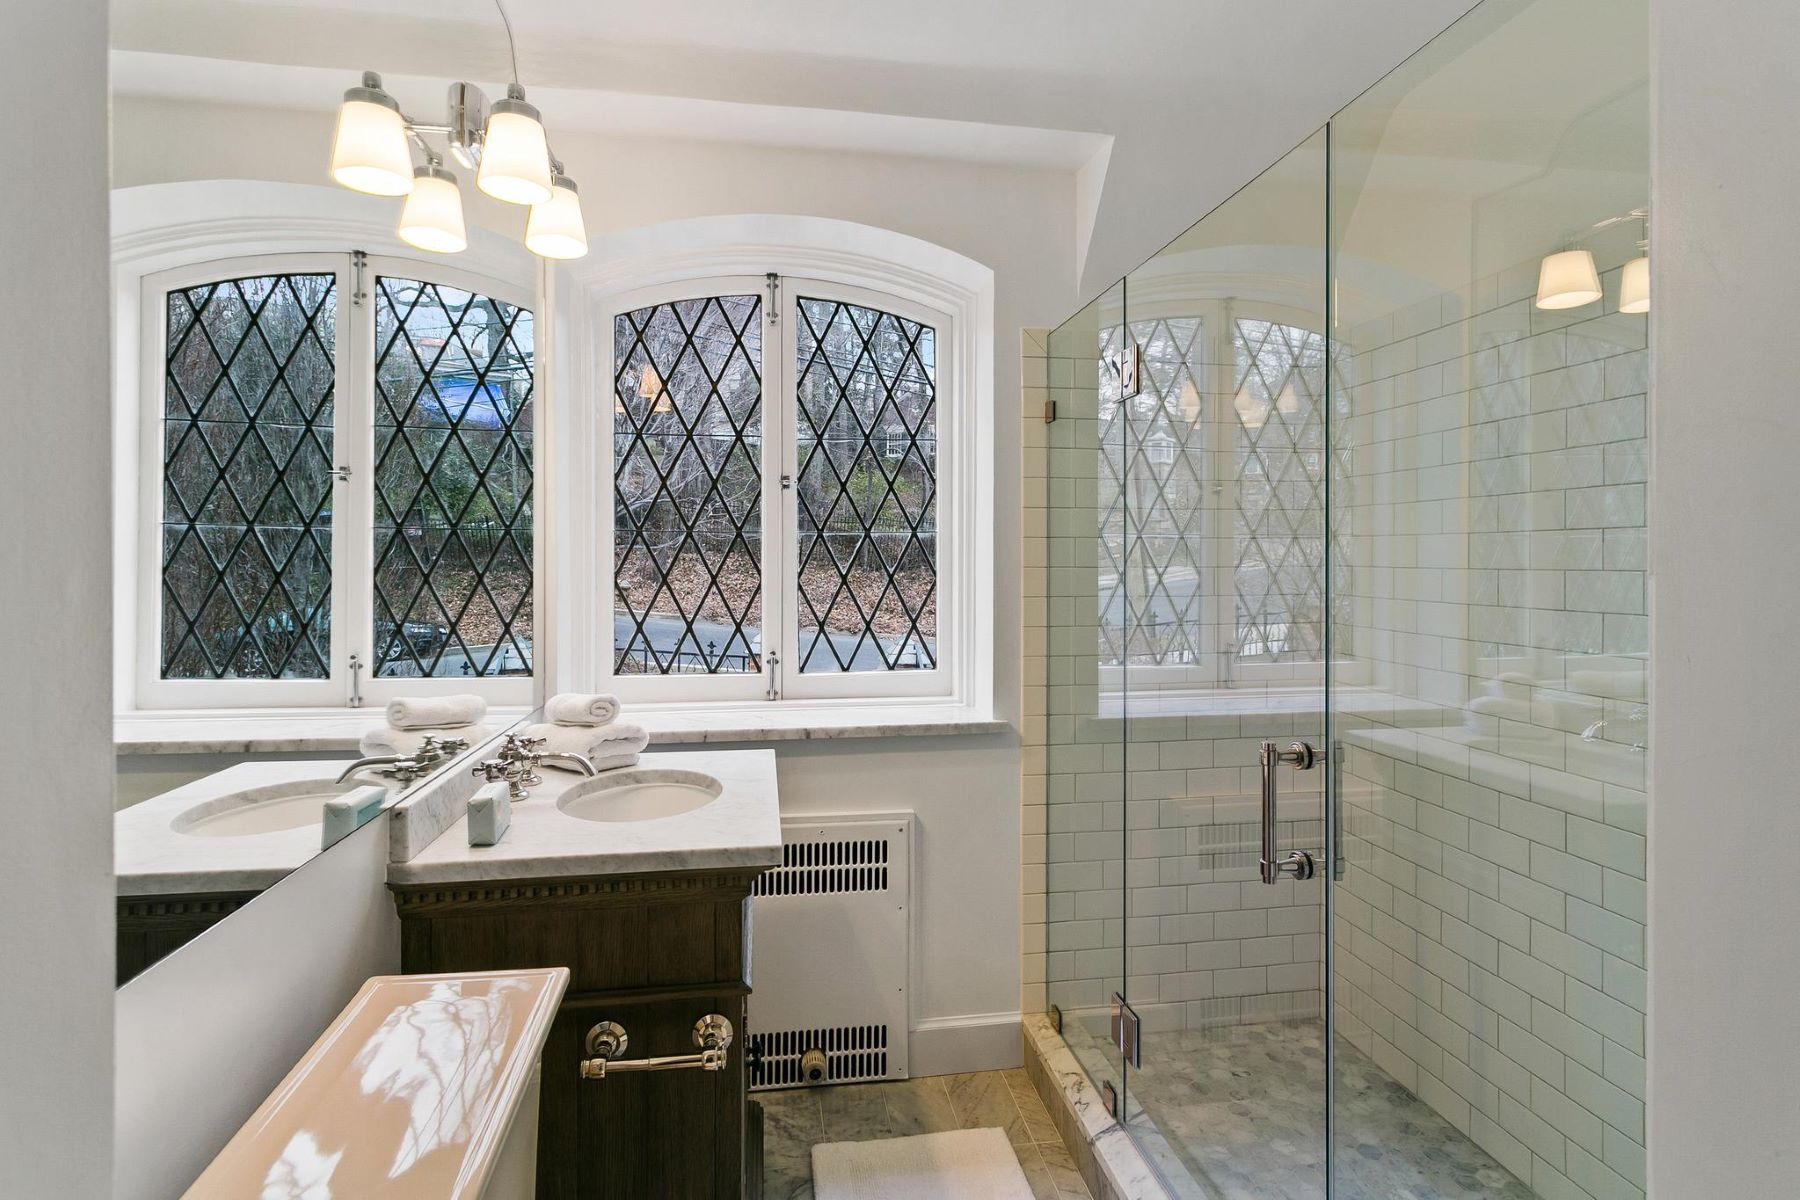 Additional photo for property listing at 2740 32nd St NW Washington, District Of Columbia 20008 United States